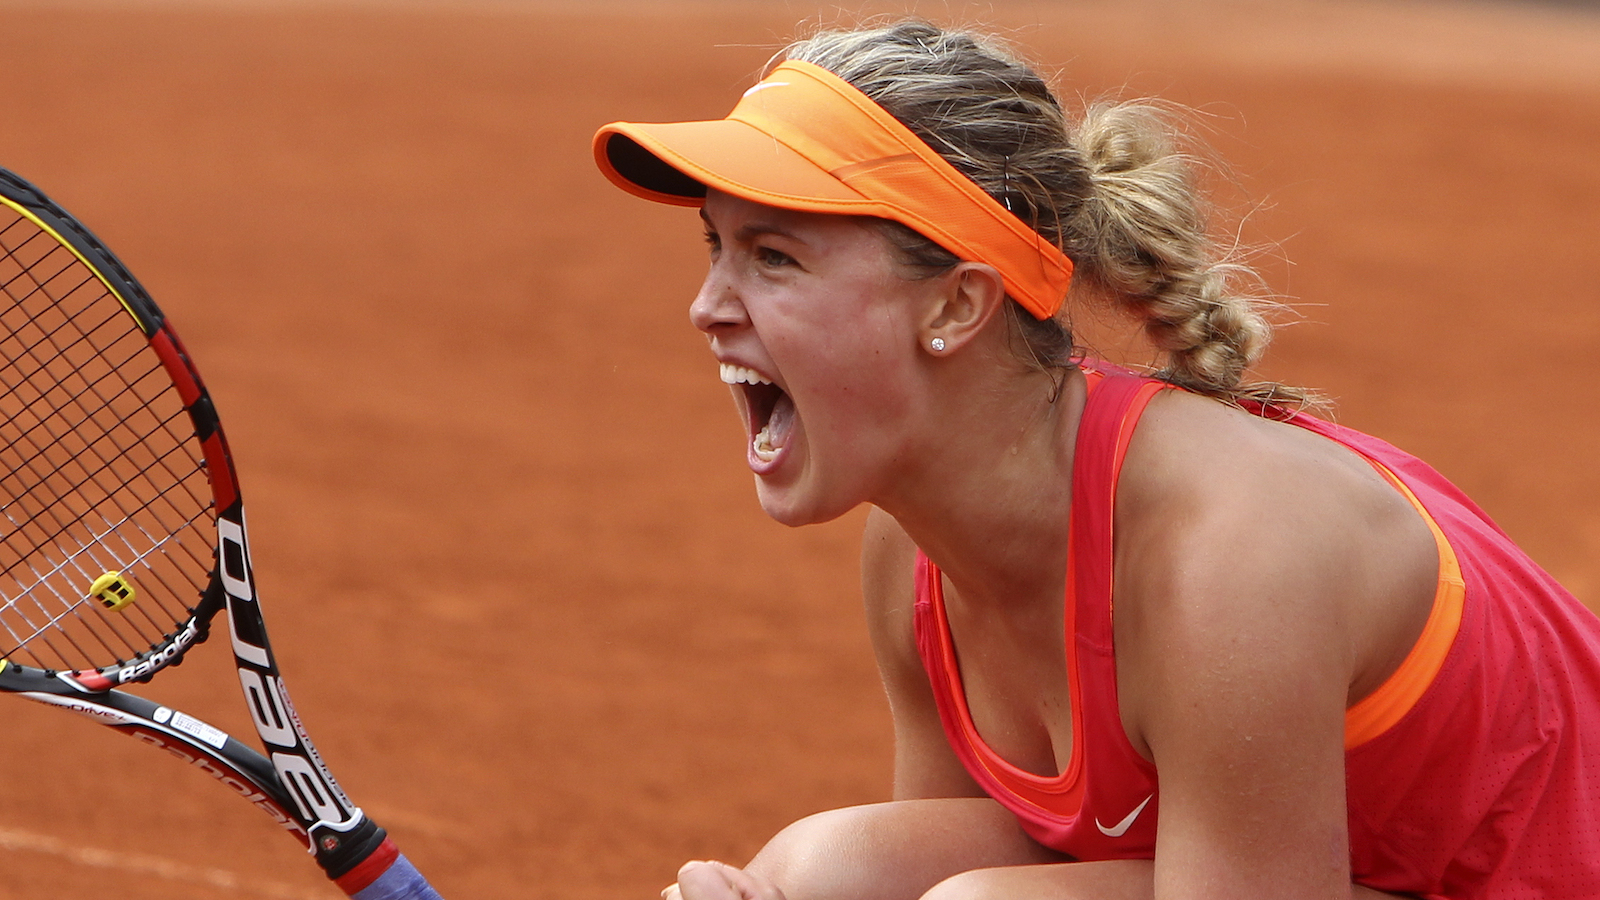 Eugenie Bouchard celebrates after defeating Spain's Carla Suarez Navarro during their quarterfinal match at the French Open on June 3, 2014. (David Vincent/AP)